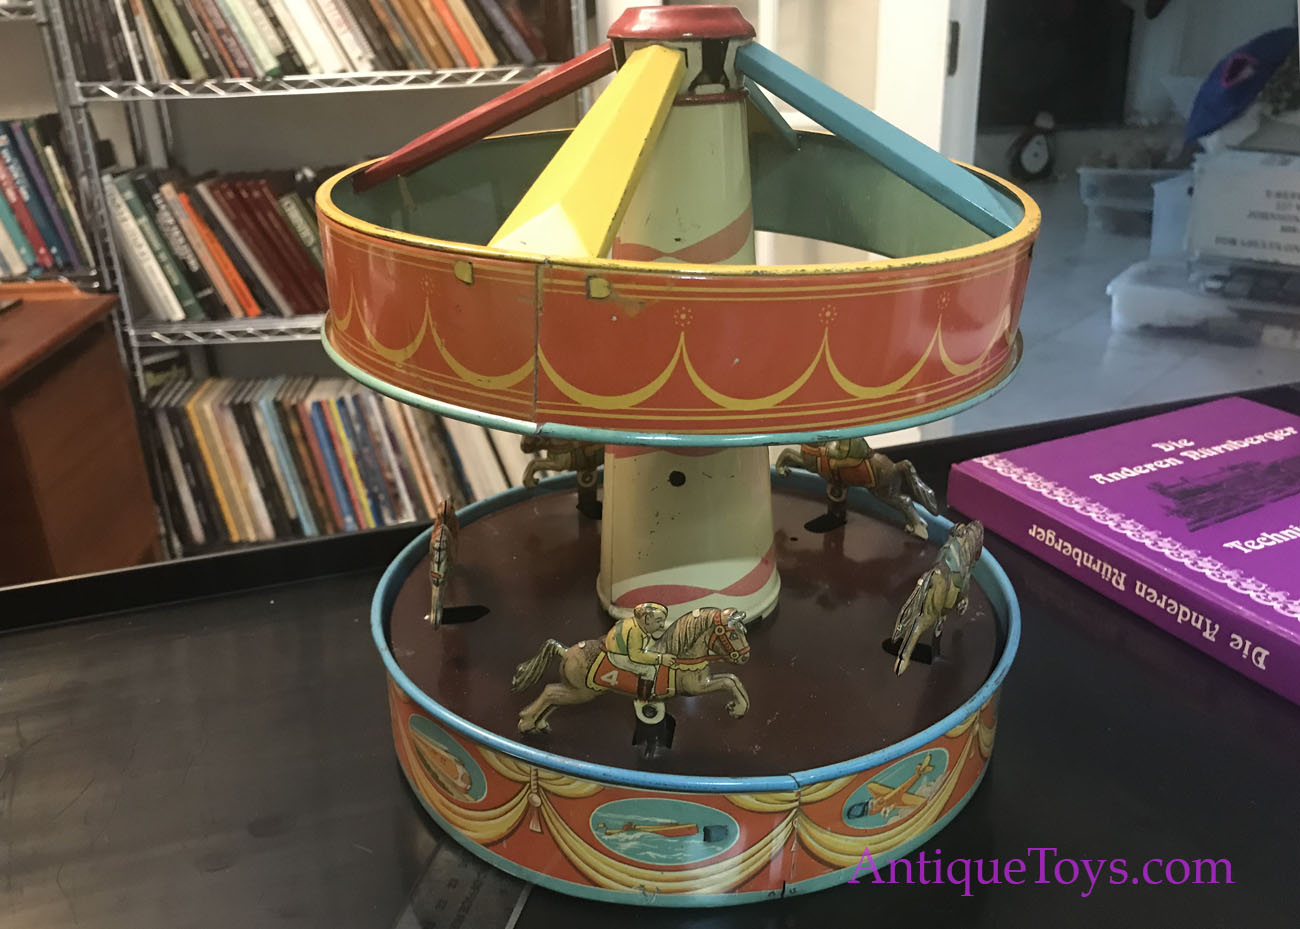 Toy Shop Antique Toys For Sale Old And Vintage Toys For Sale